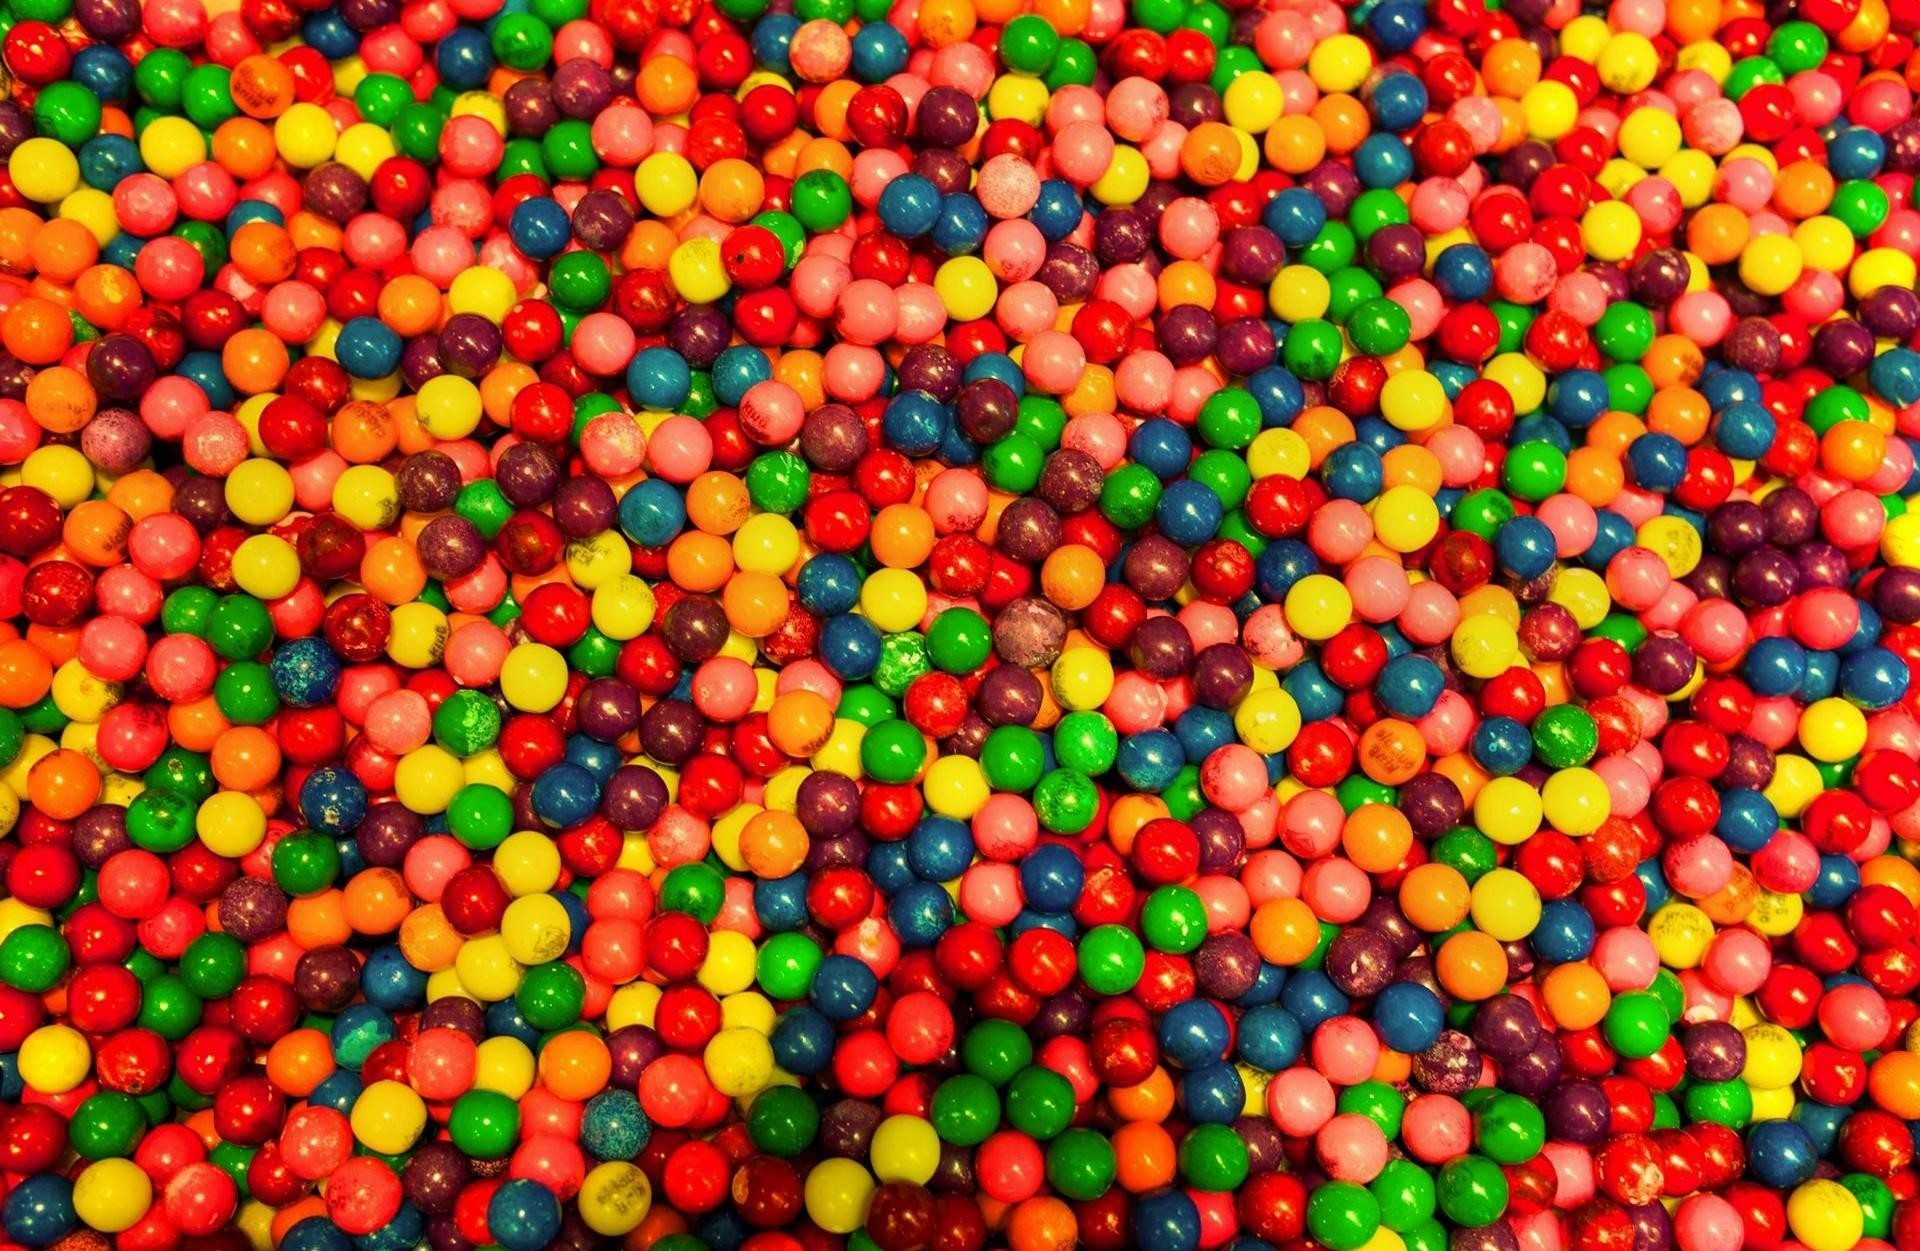 Candy-hd-wallpapers-for-desktop-high-definition-download